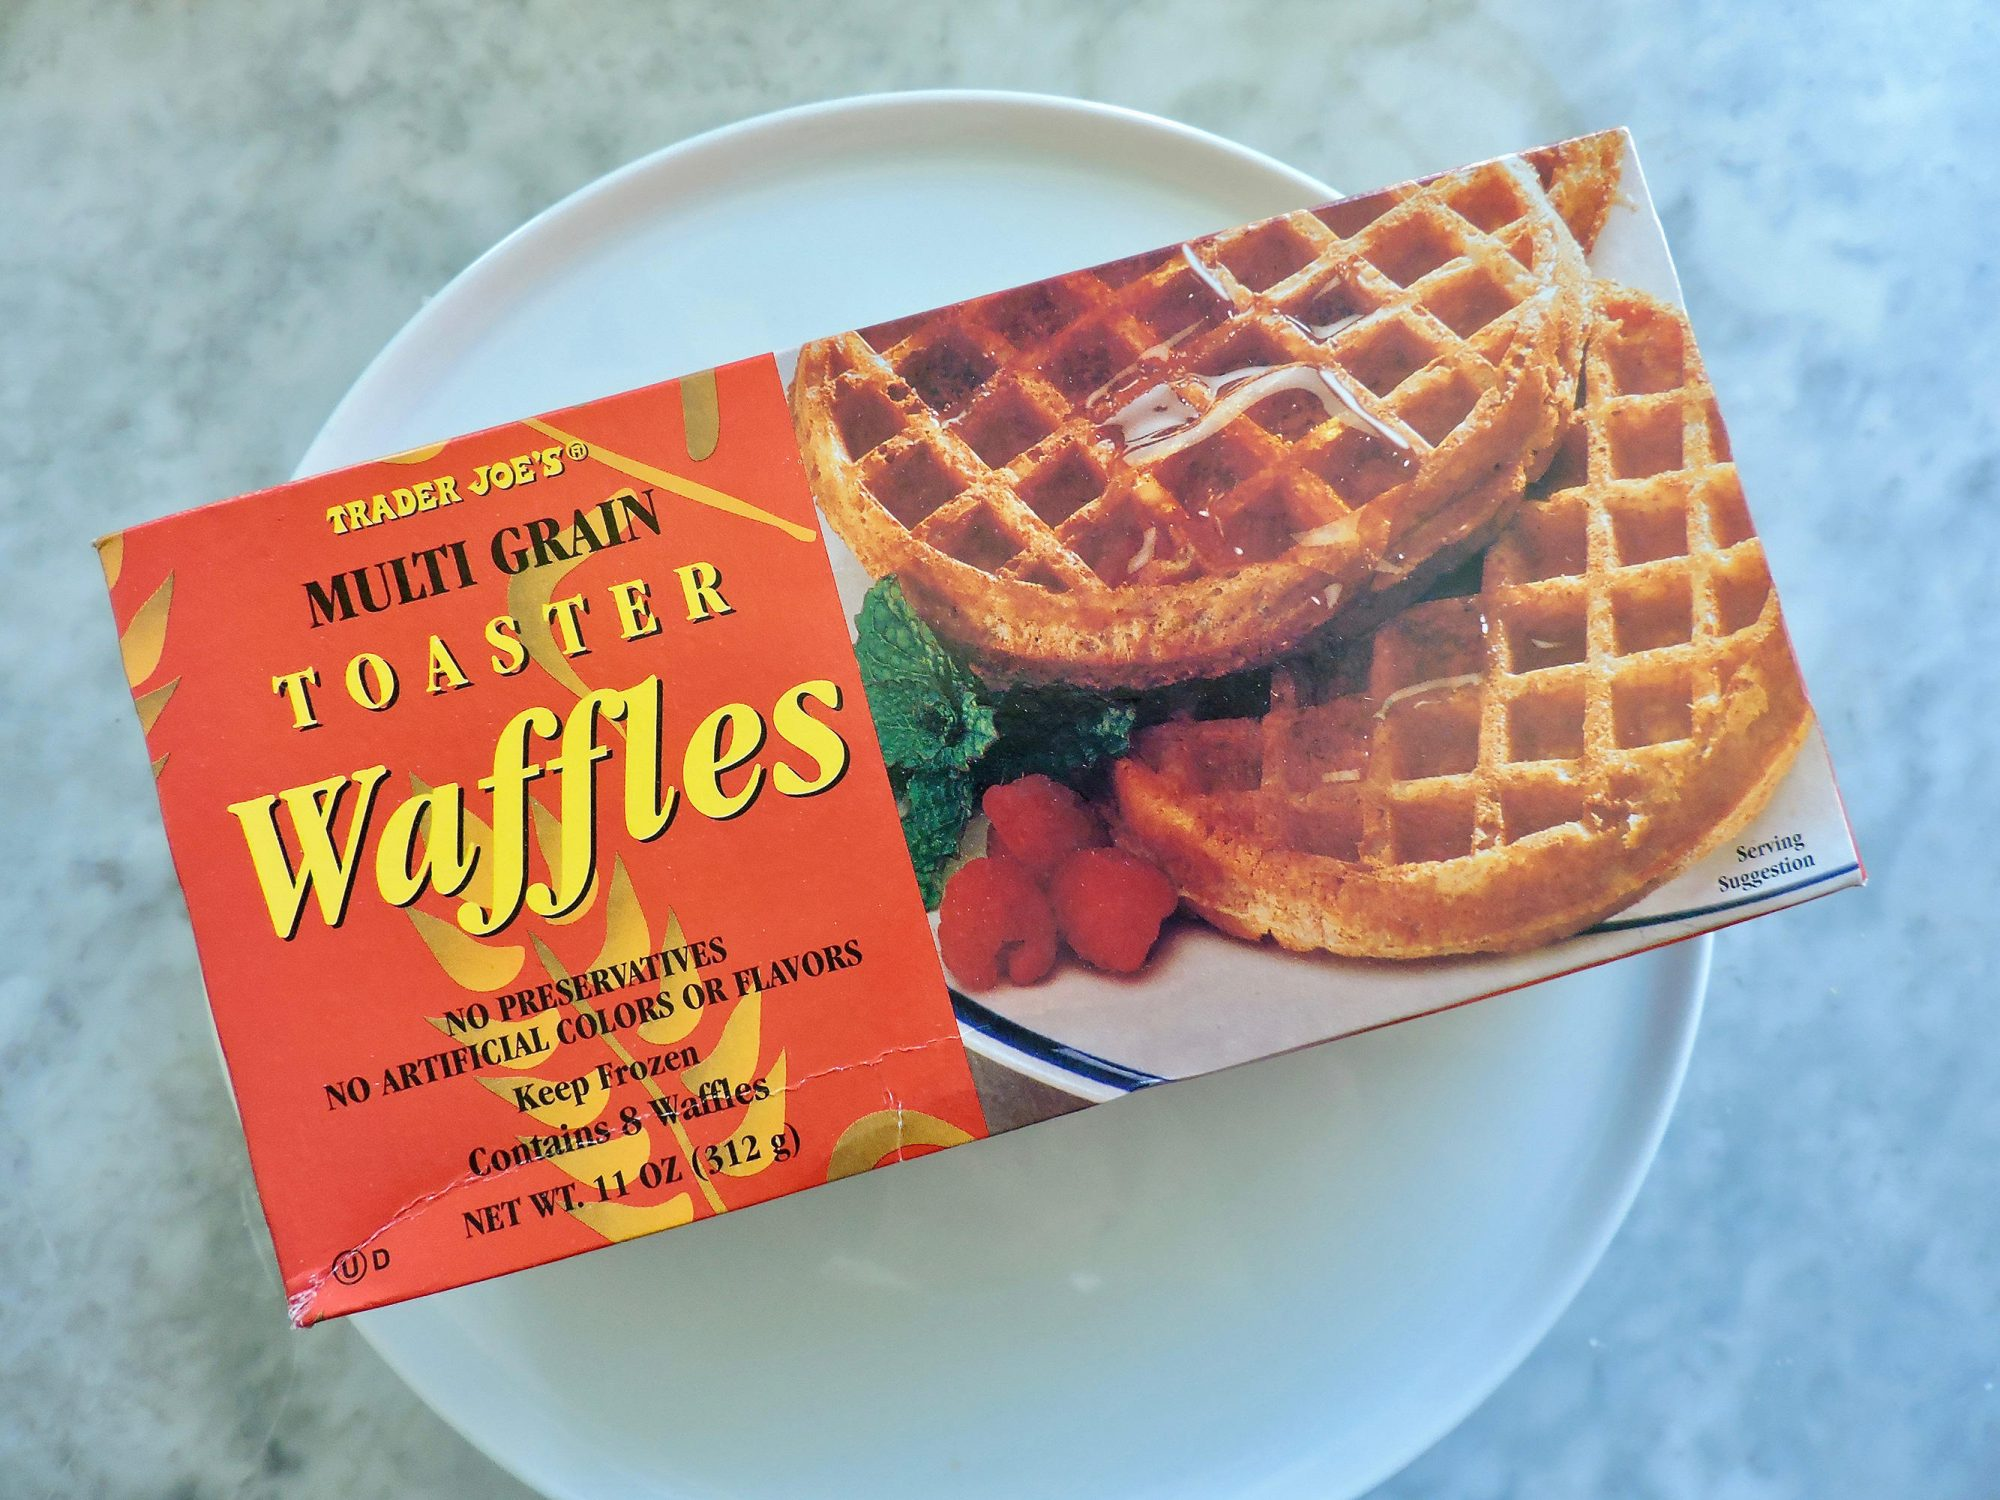 15 Nutritionist-Approved Trader Joe's Foods for $5 or Less 1804w-Multigrain-Toaster-Waffles